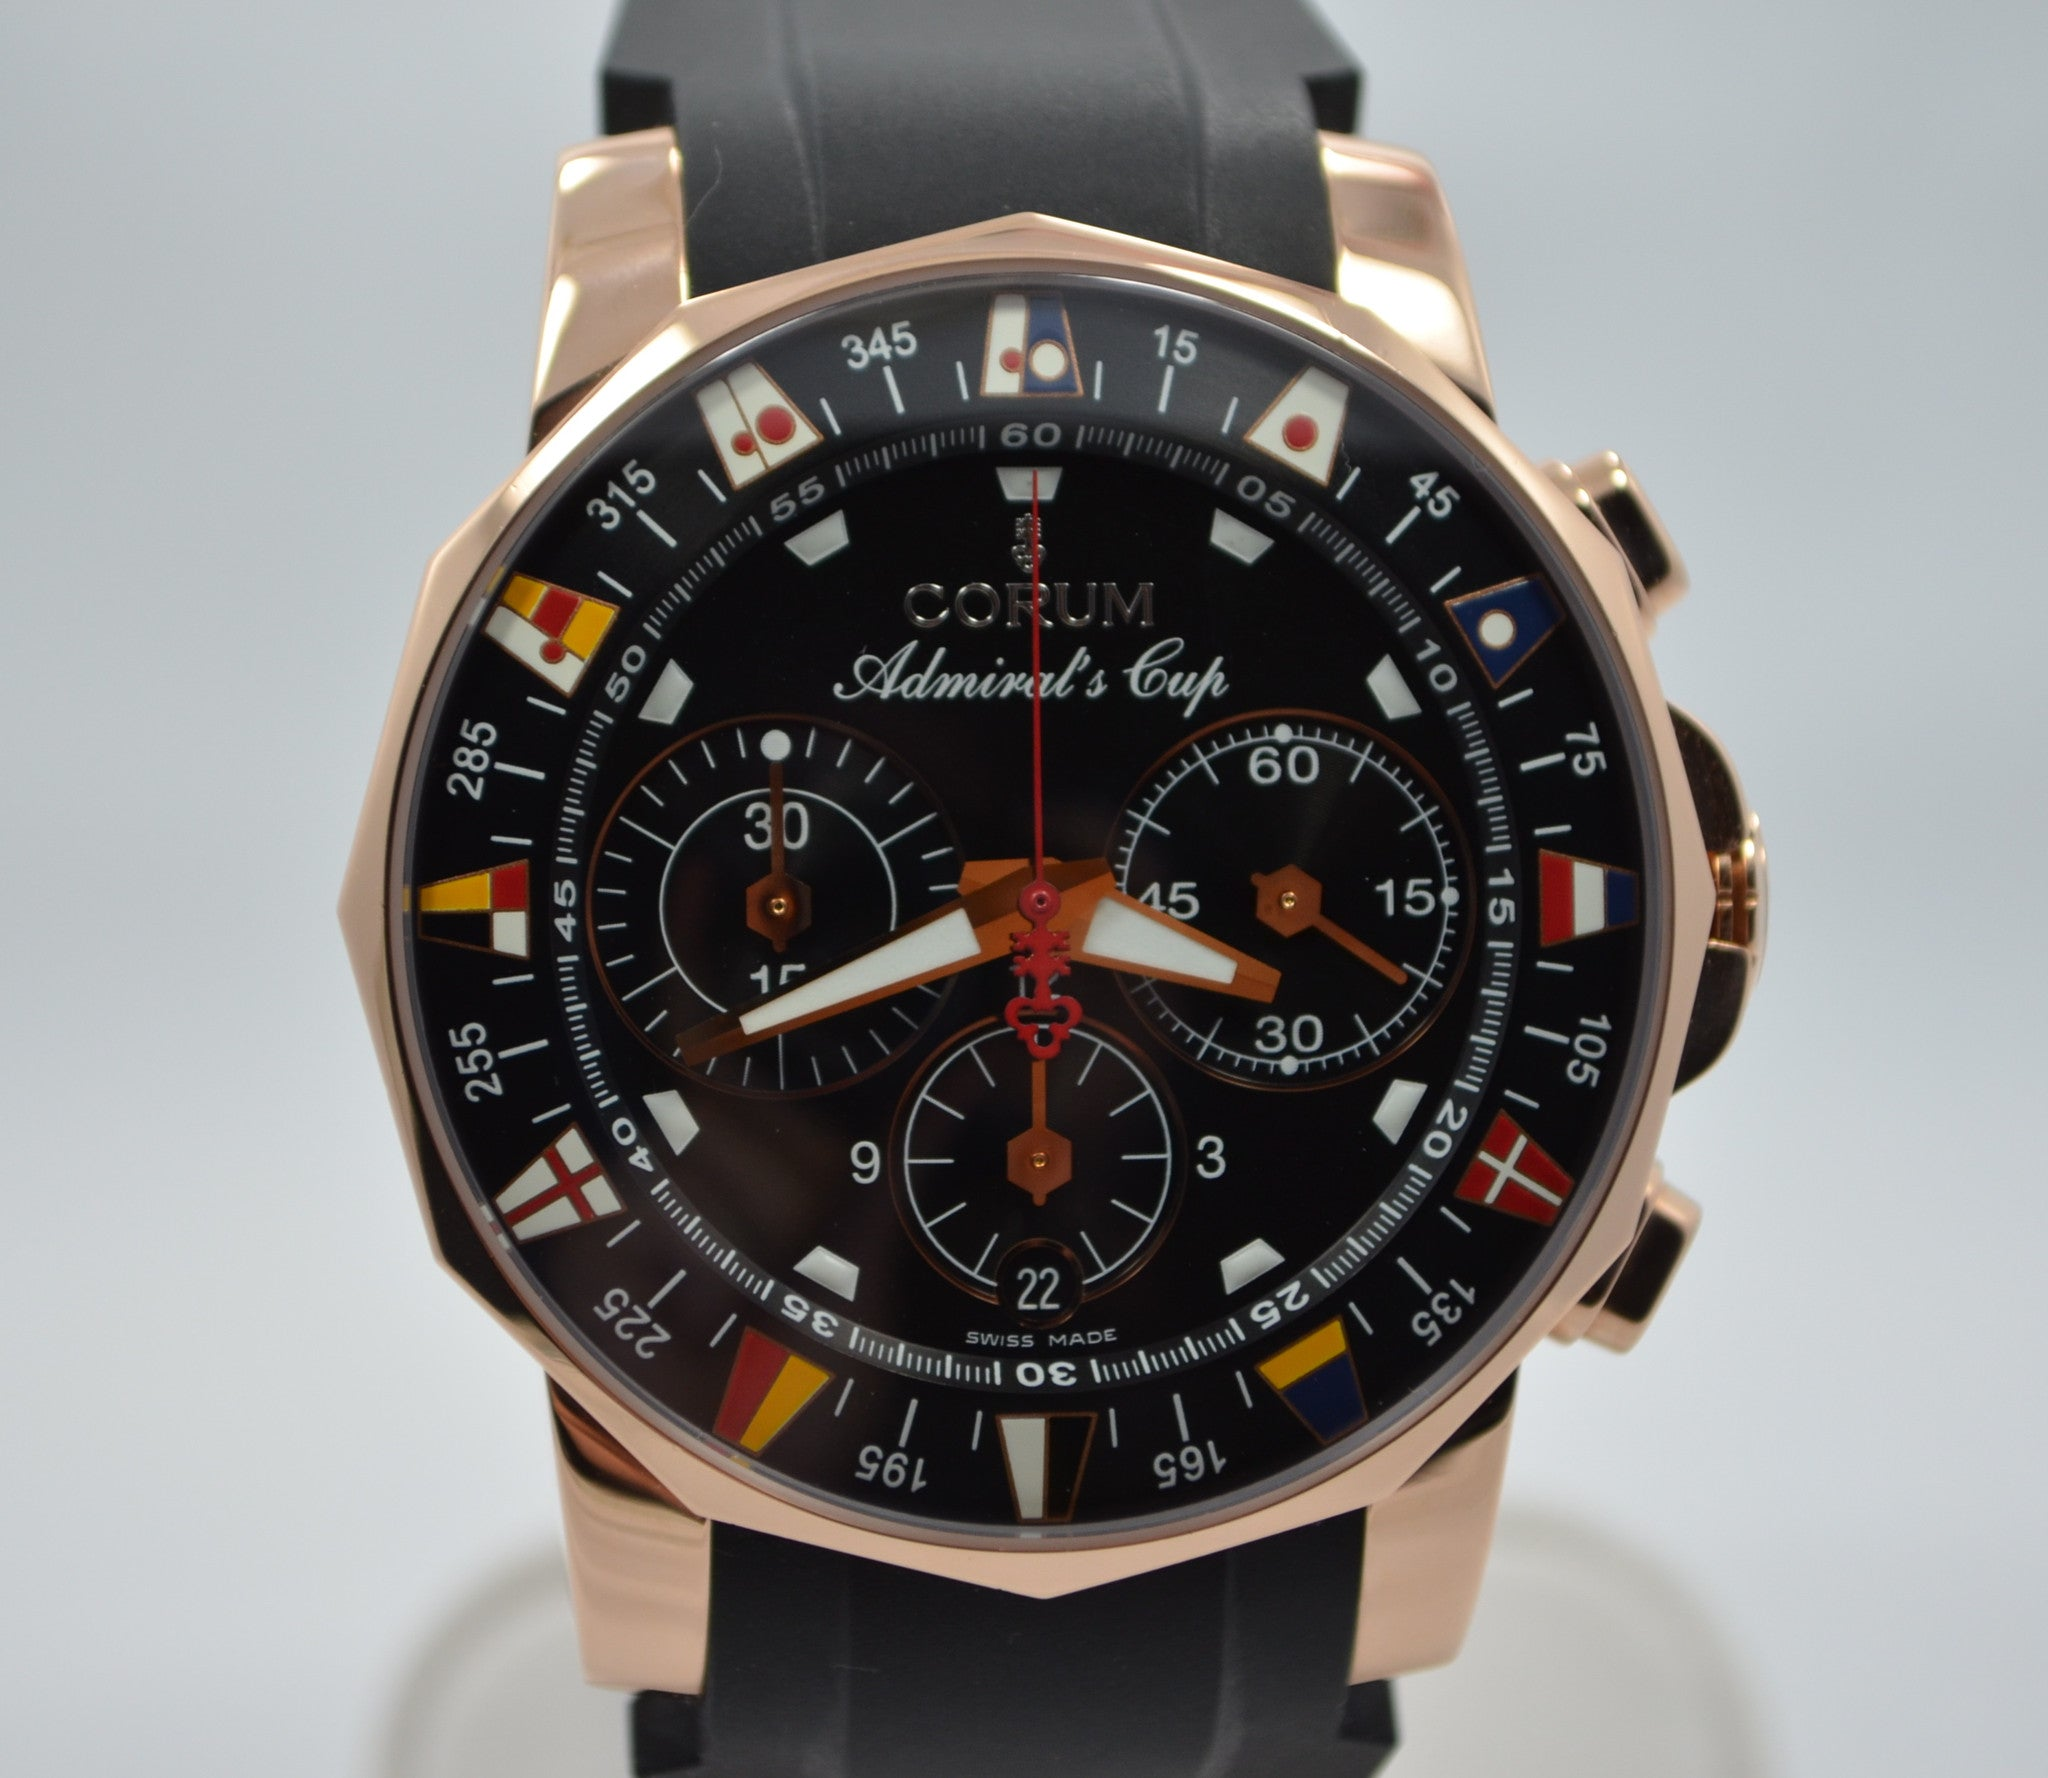 Corum Admirals Cup 985.671.55 18K Rose Gold Wristwatch - Hashtag Watch Company